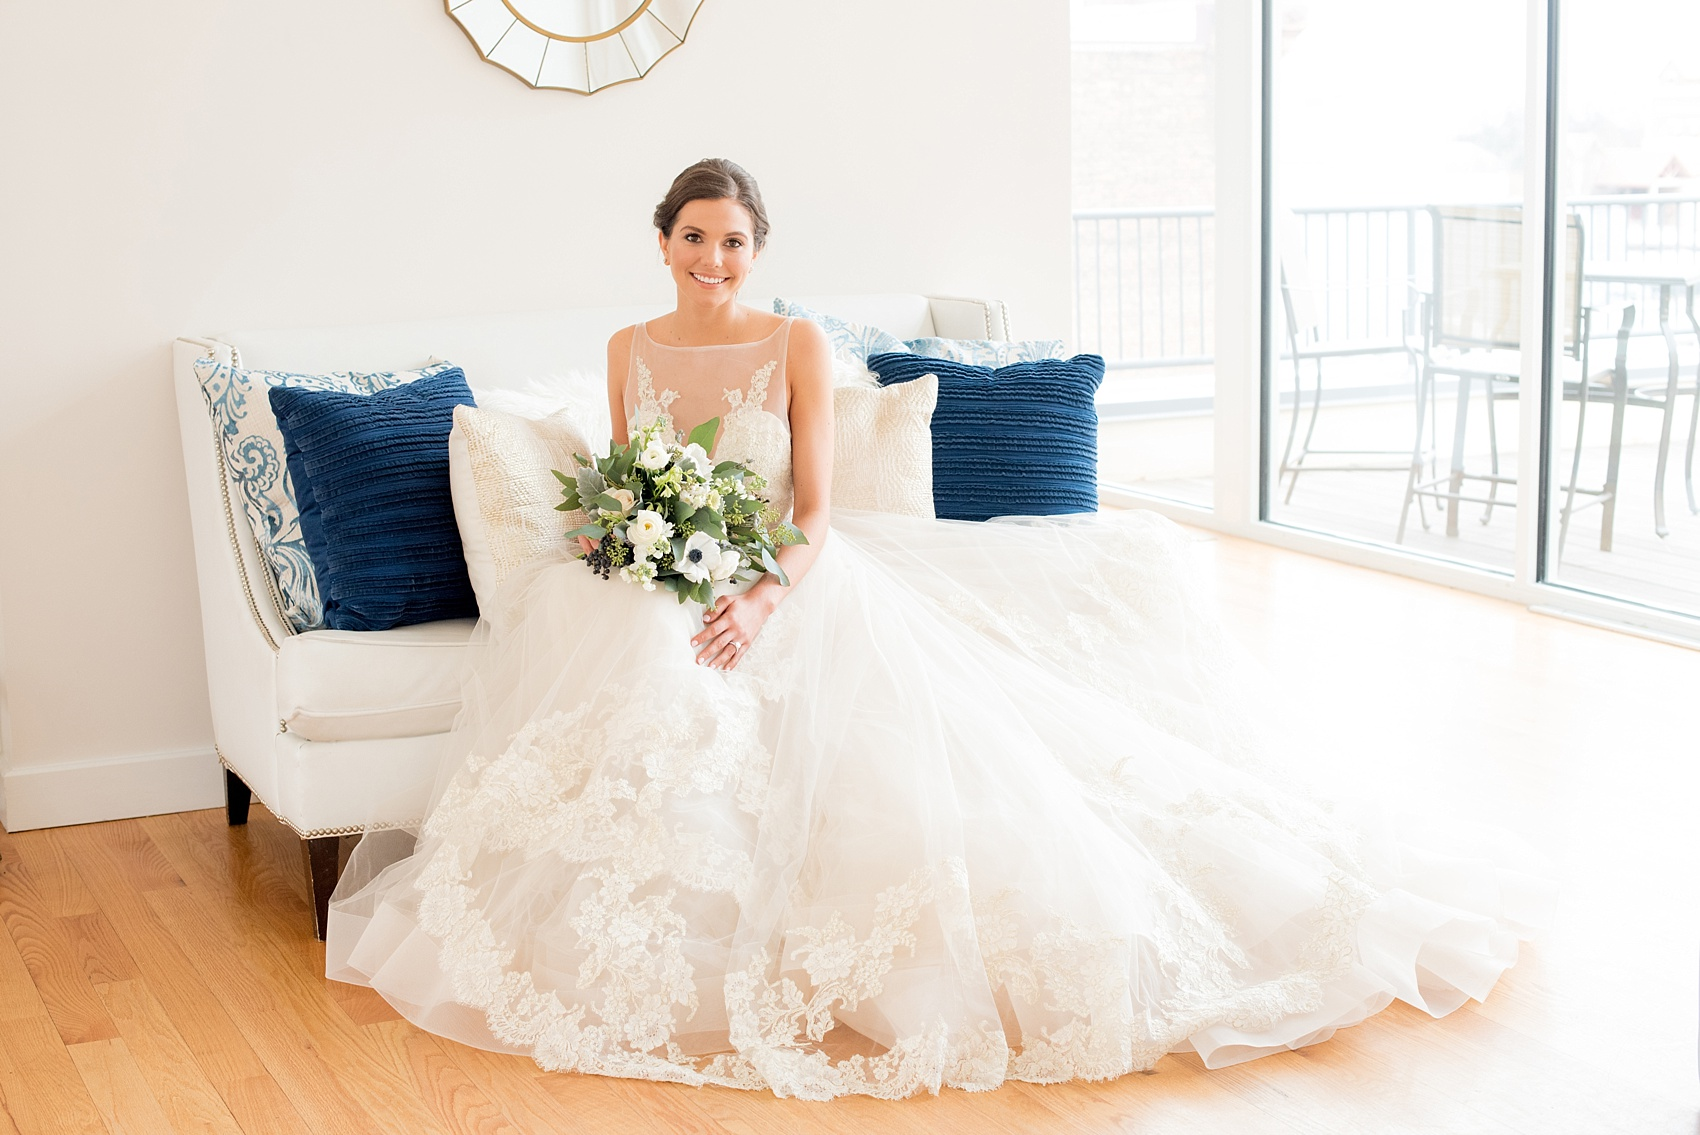 The Glass Box Raleigh wedding photos by Mikkel Paige Photography. Picture of the bride in a Lazaro gown in this modern downtown venue holding a bouquet of eucalyptus and anemones.